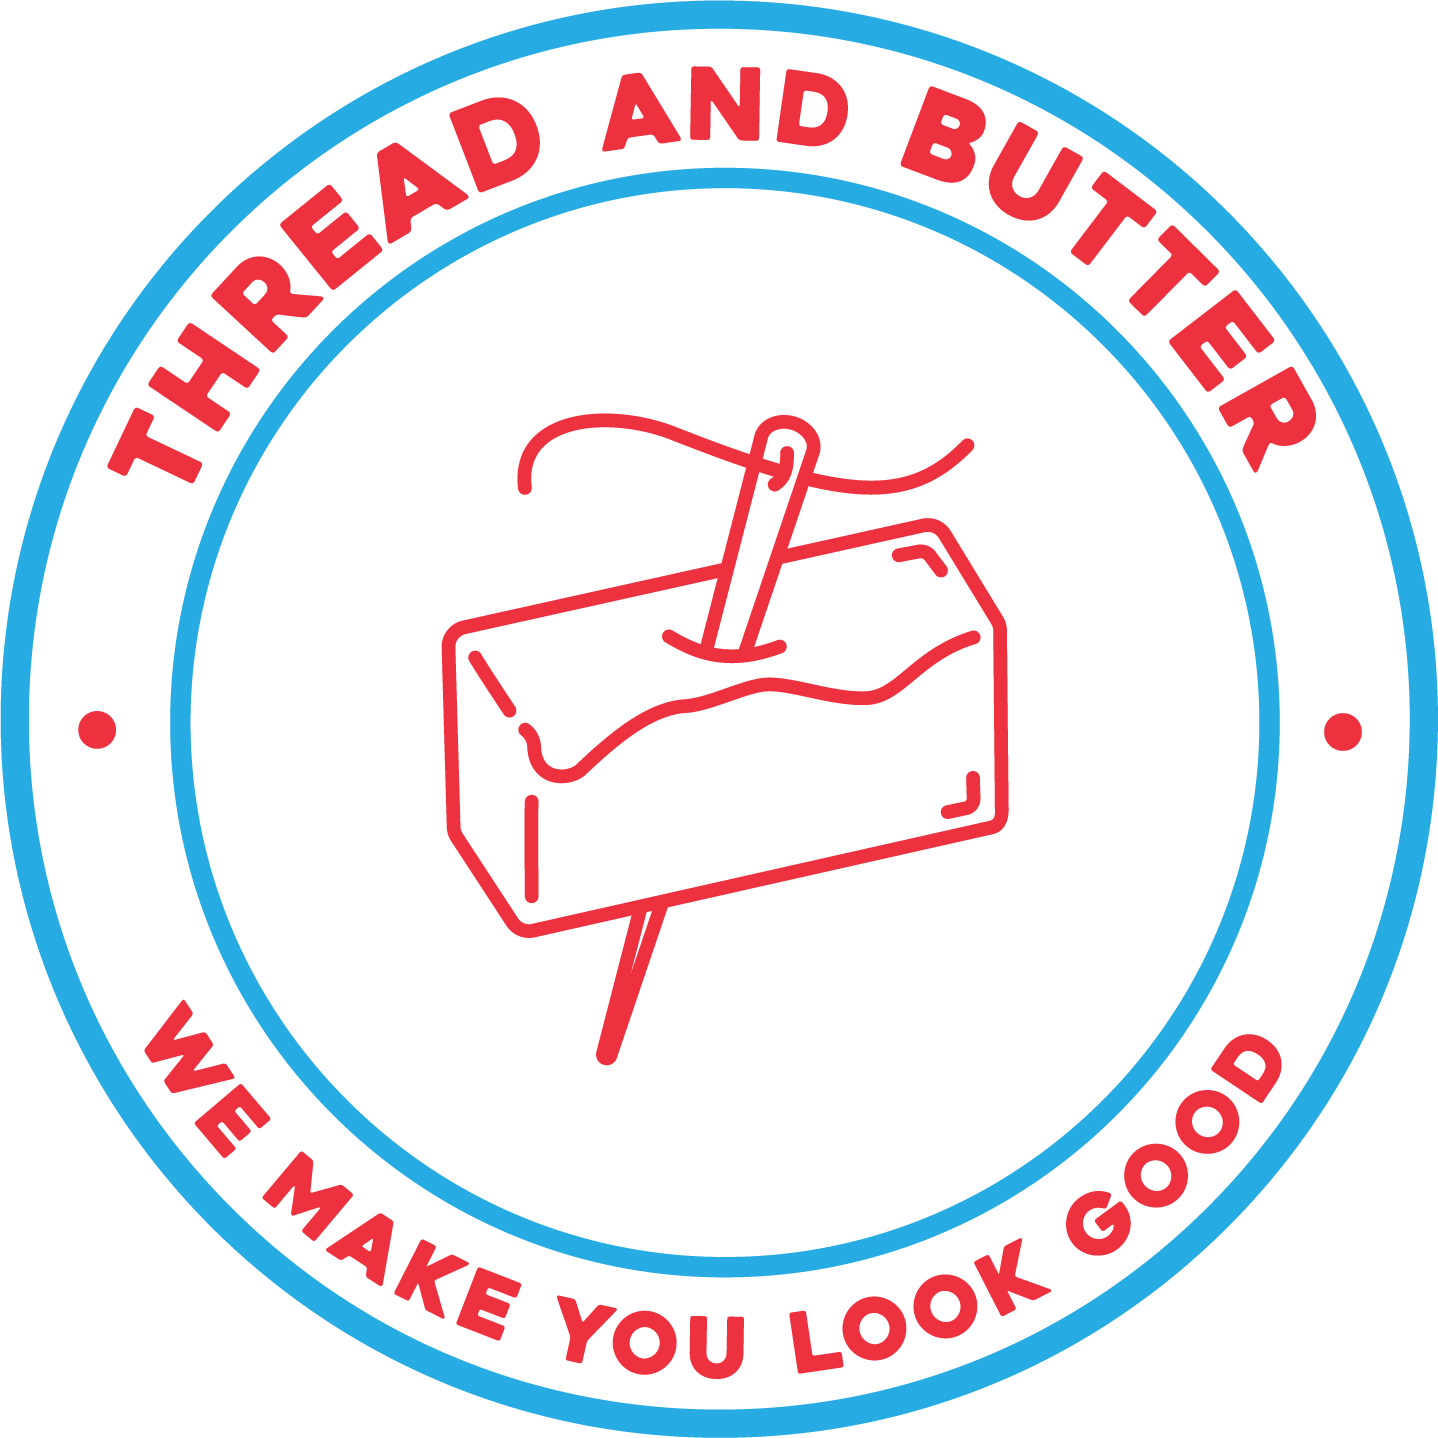 Thread and Butter Designs